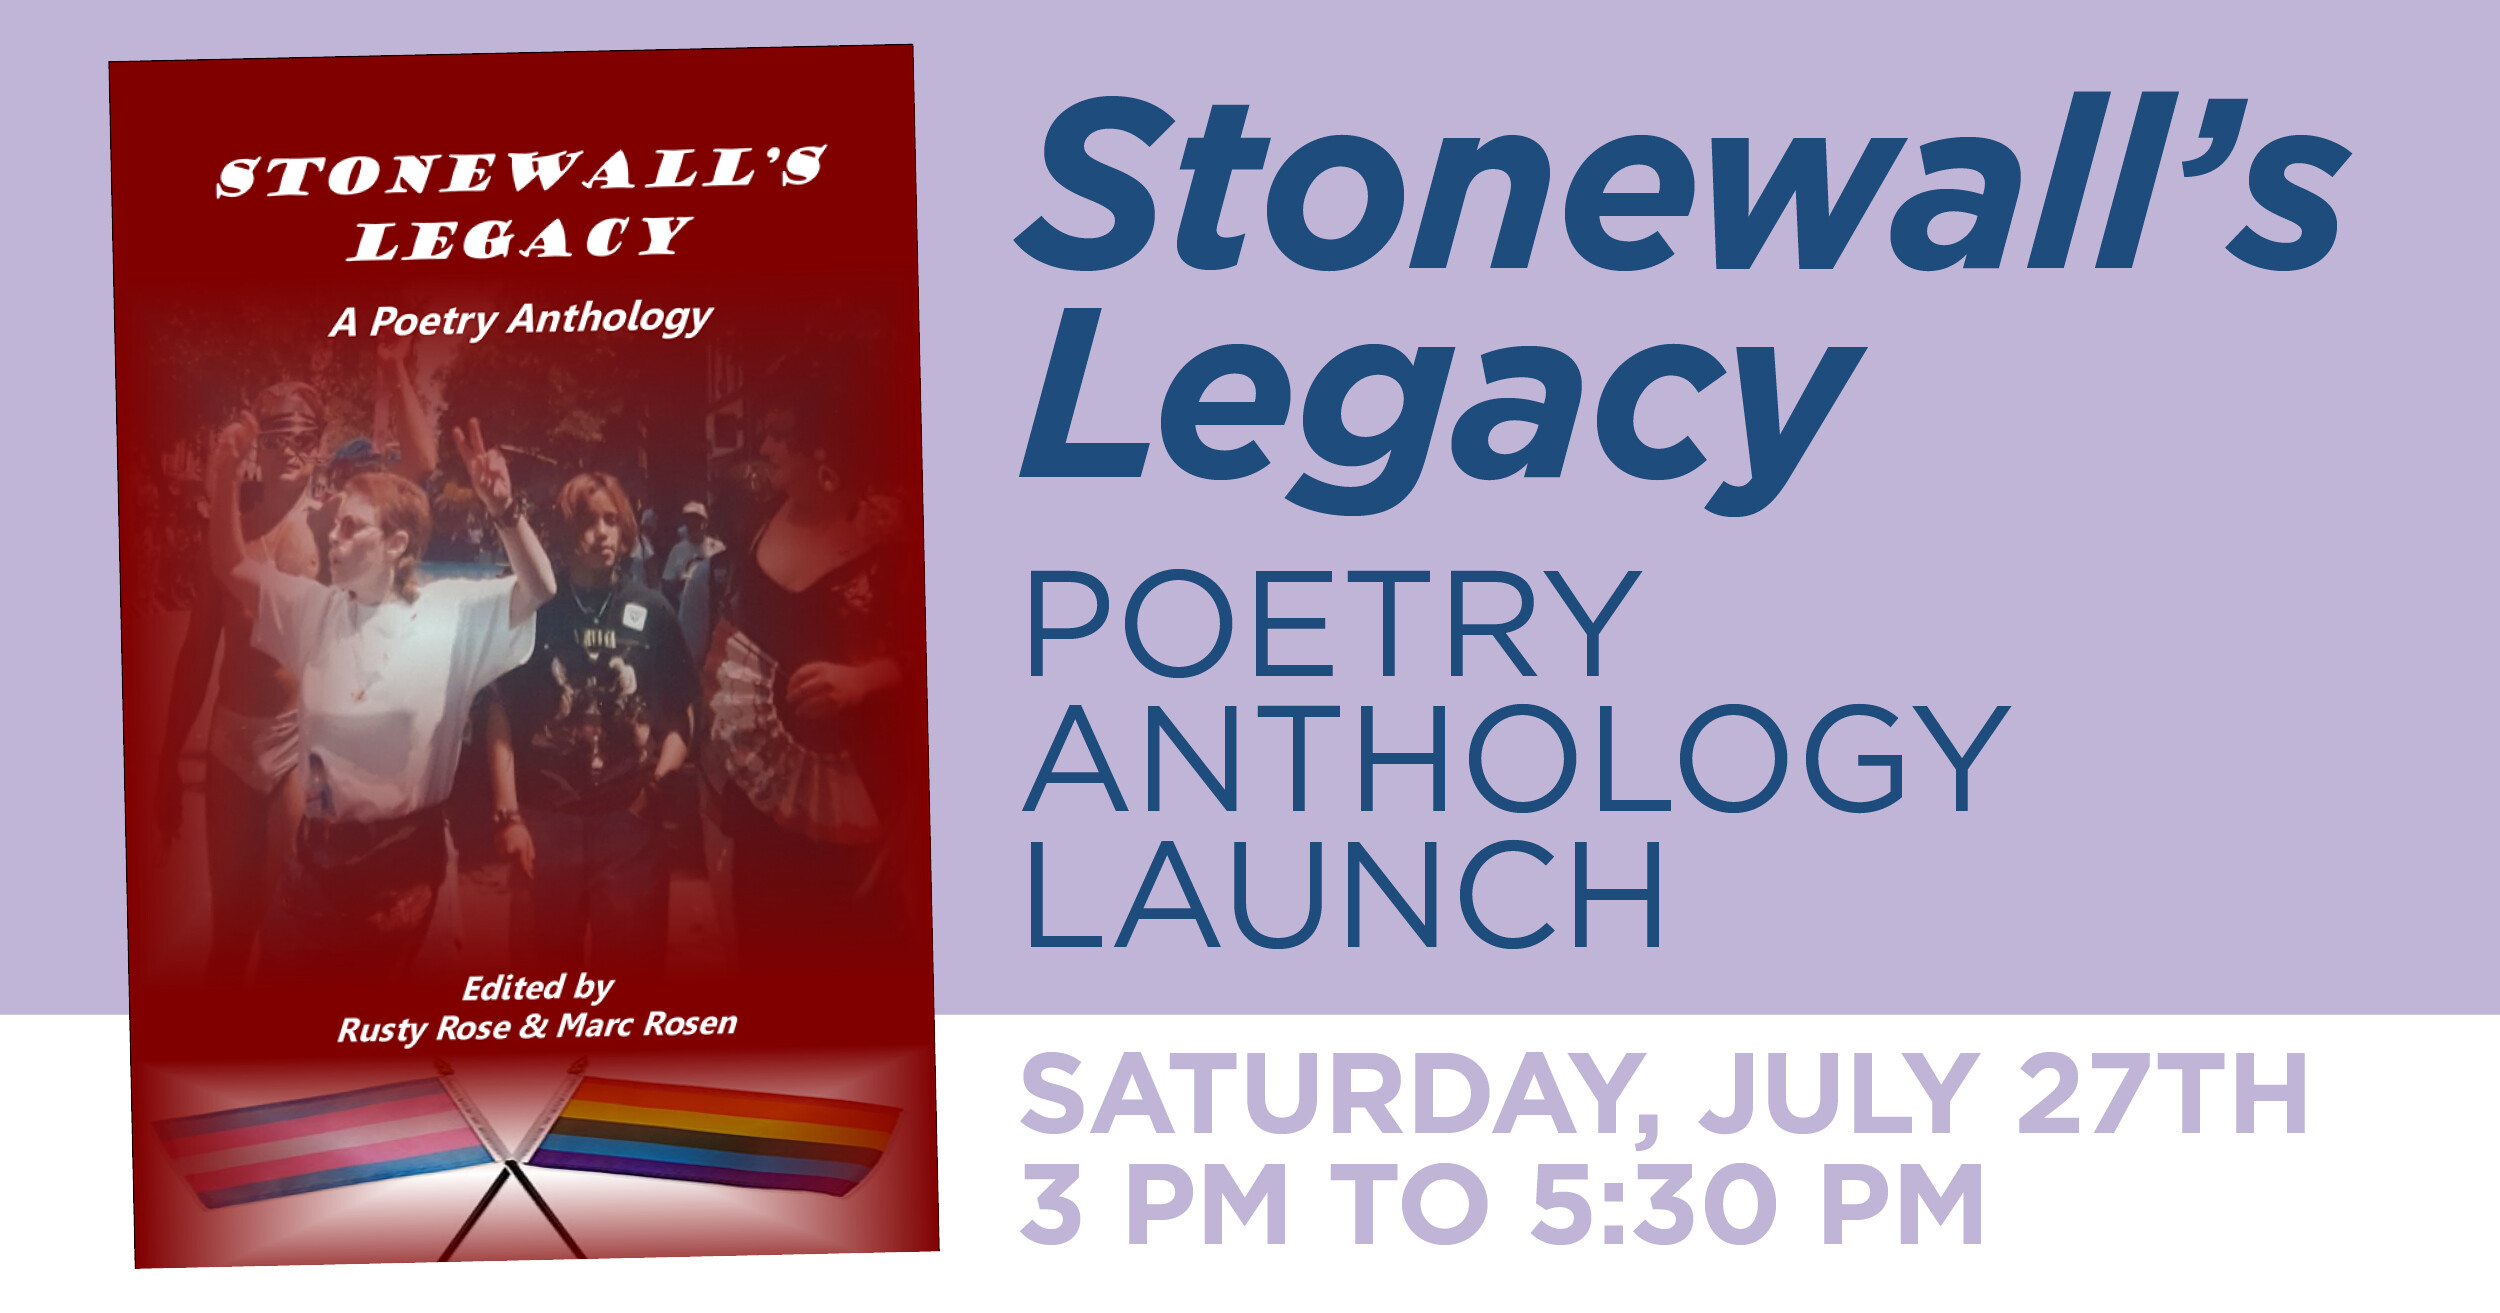 Stonewall's Legacy Poetry Anthology Launch at Brooklyn Community Pride Center